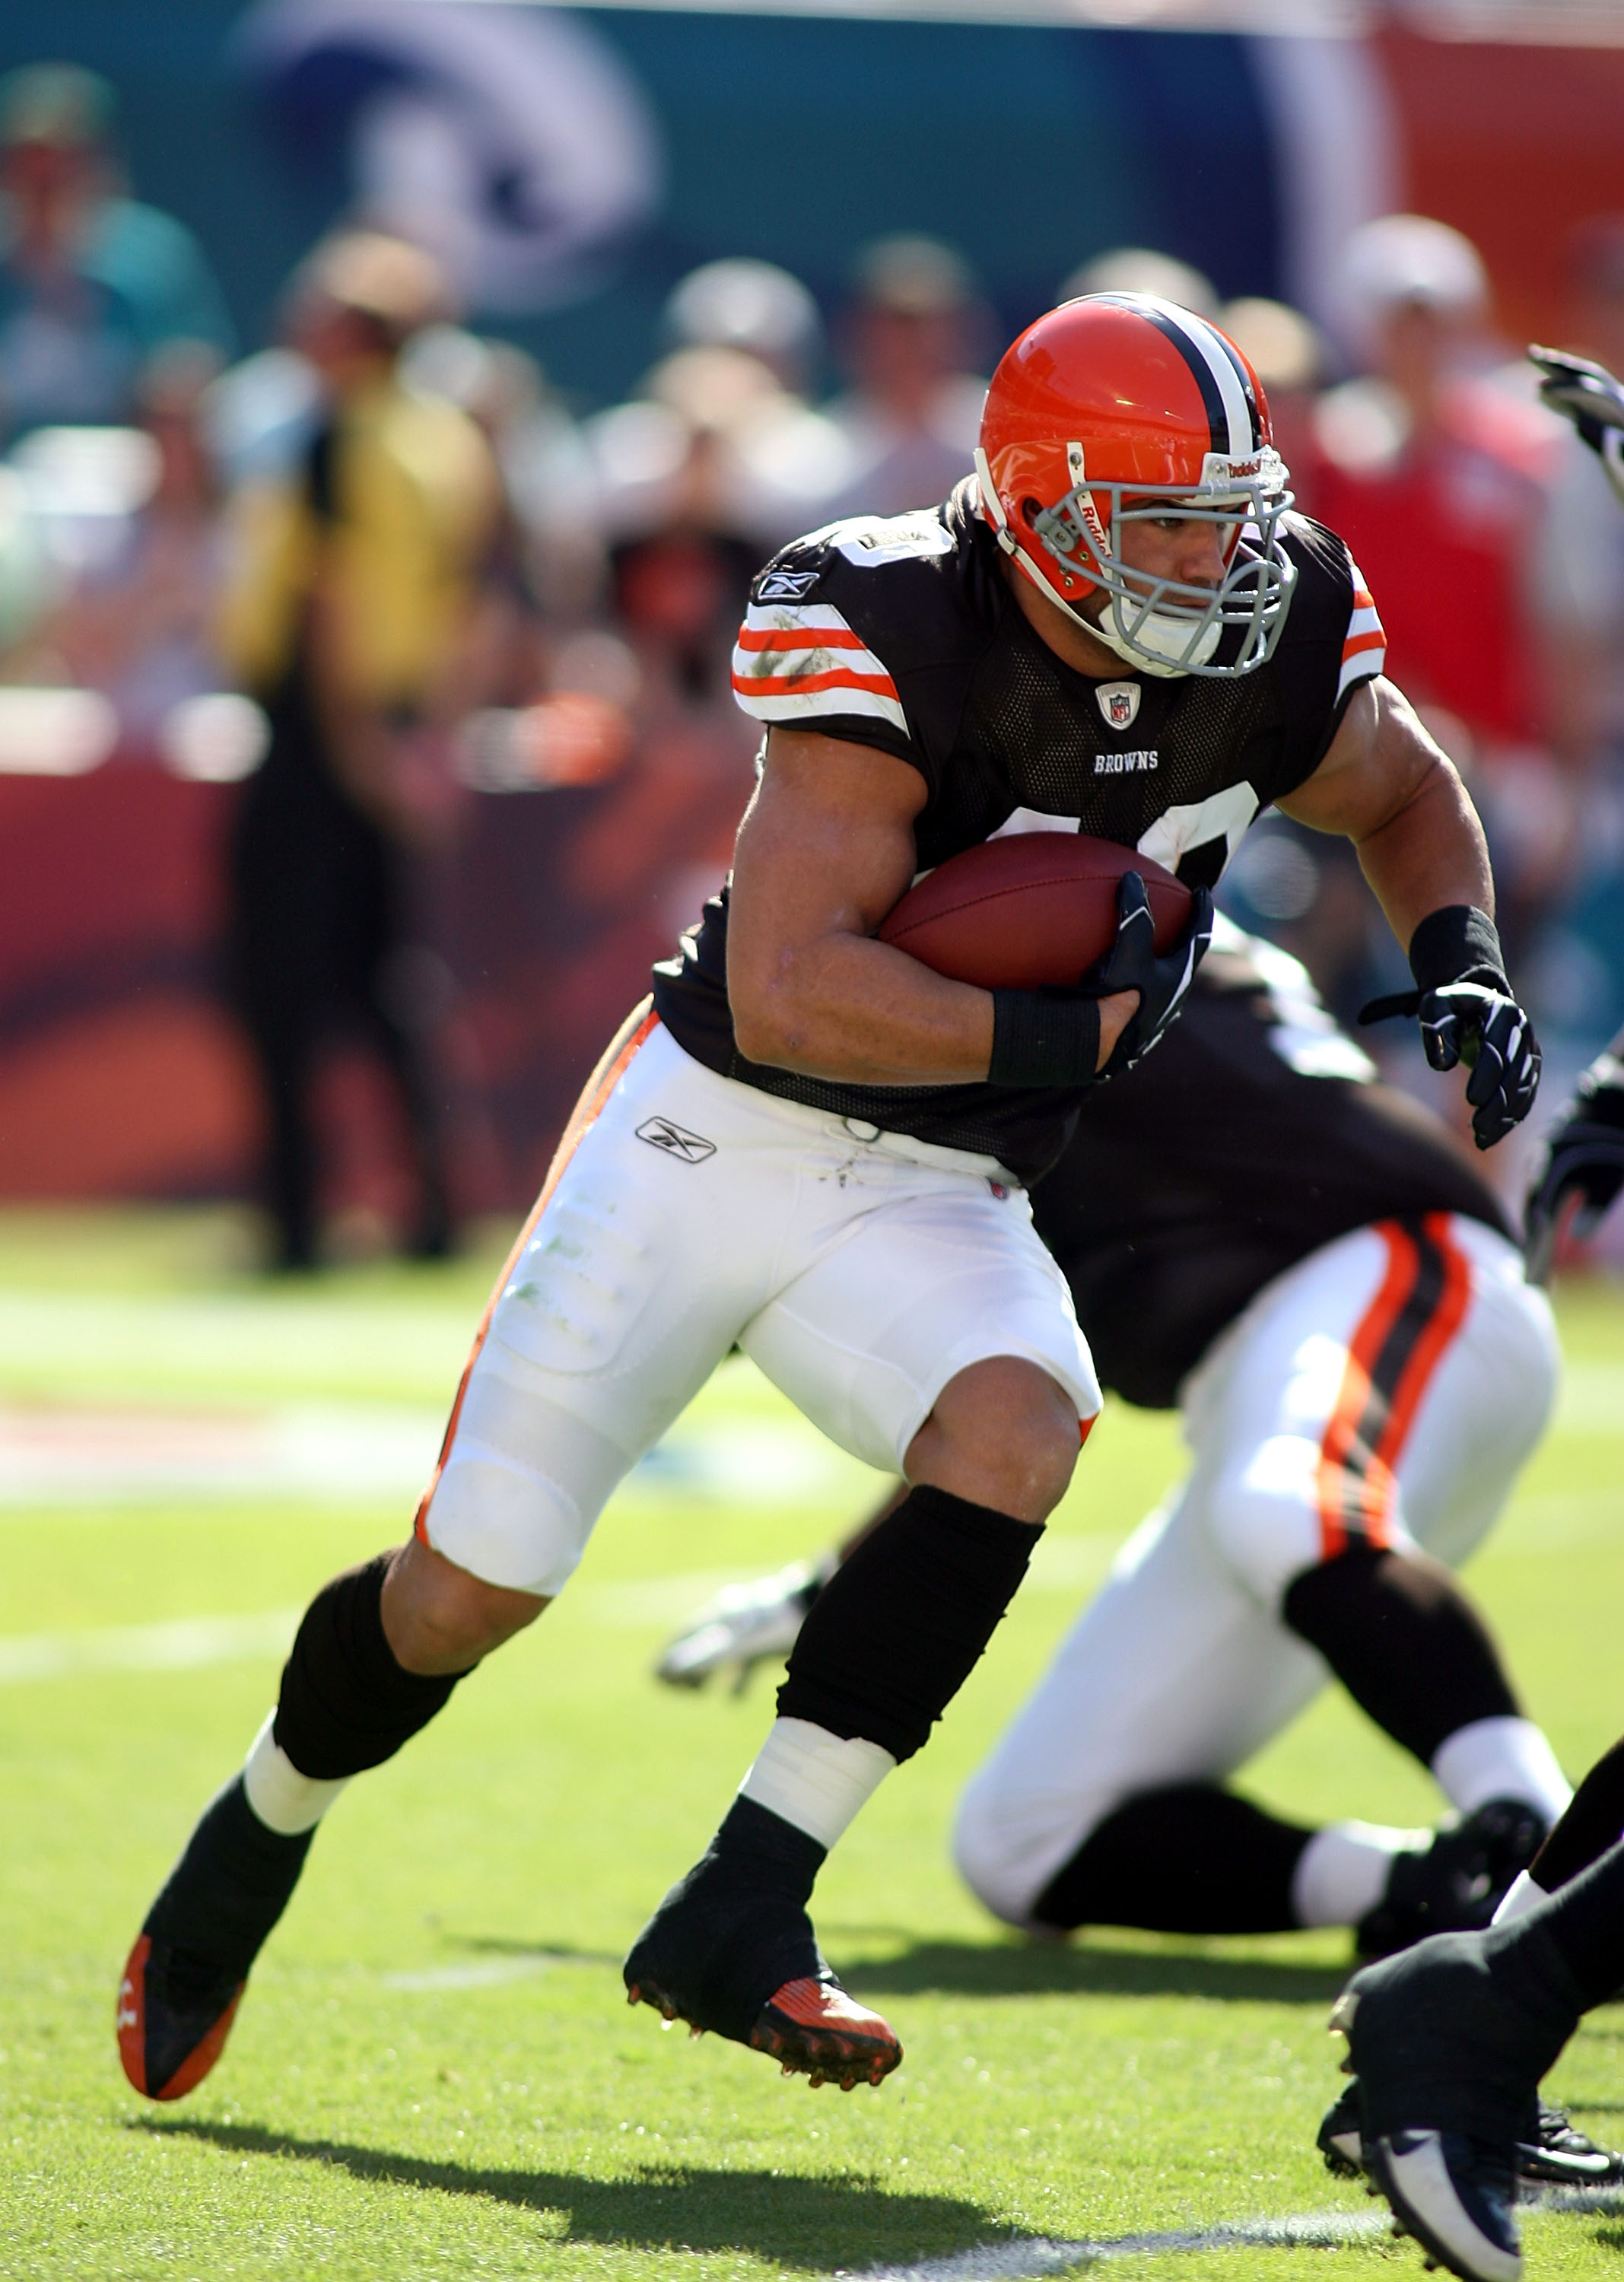 MIAMI, FL - DECEMBER 05:  Running back Peyton Hillis #40 of the Cleveland Browns carries against the Miami Dolphins at Sun Life Stadium on December 5, 2010 in Miami, Florida.  Cleveland defeated Miami 13-10.  (Photo by Marc Serota/Getty Images)